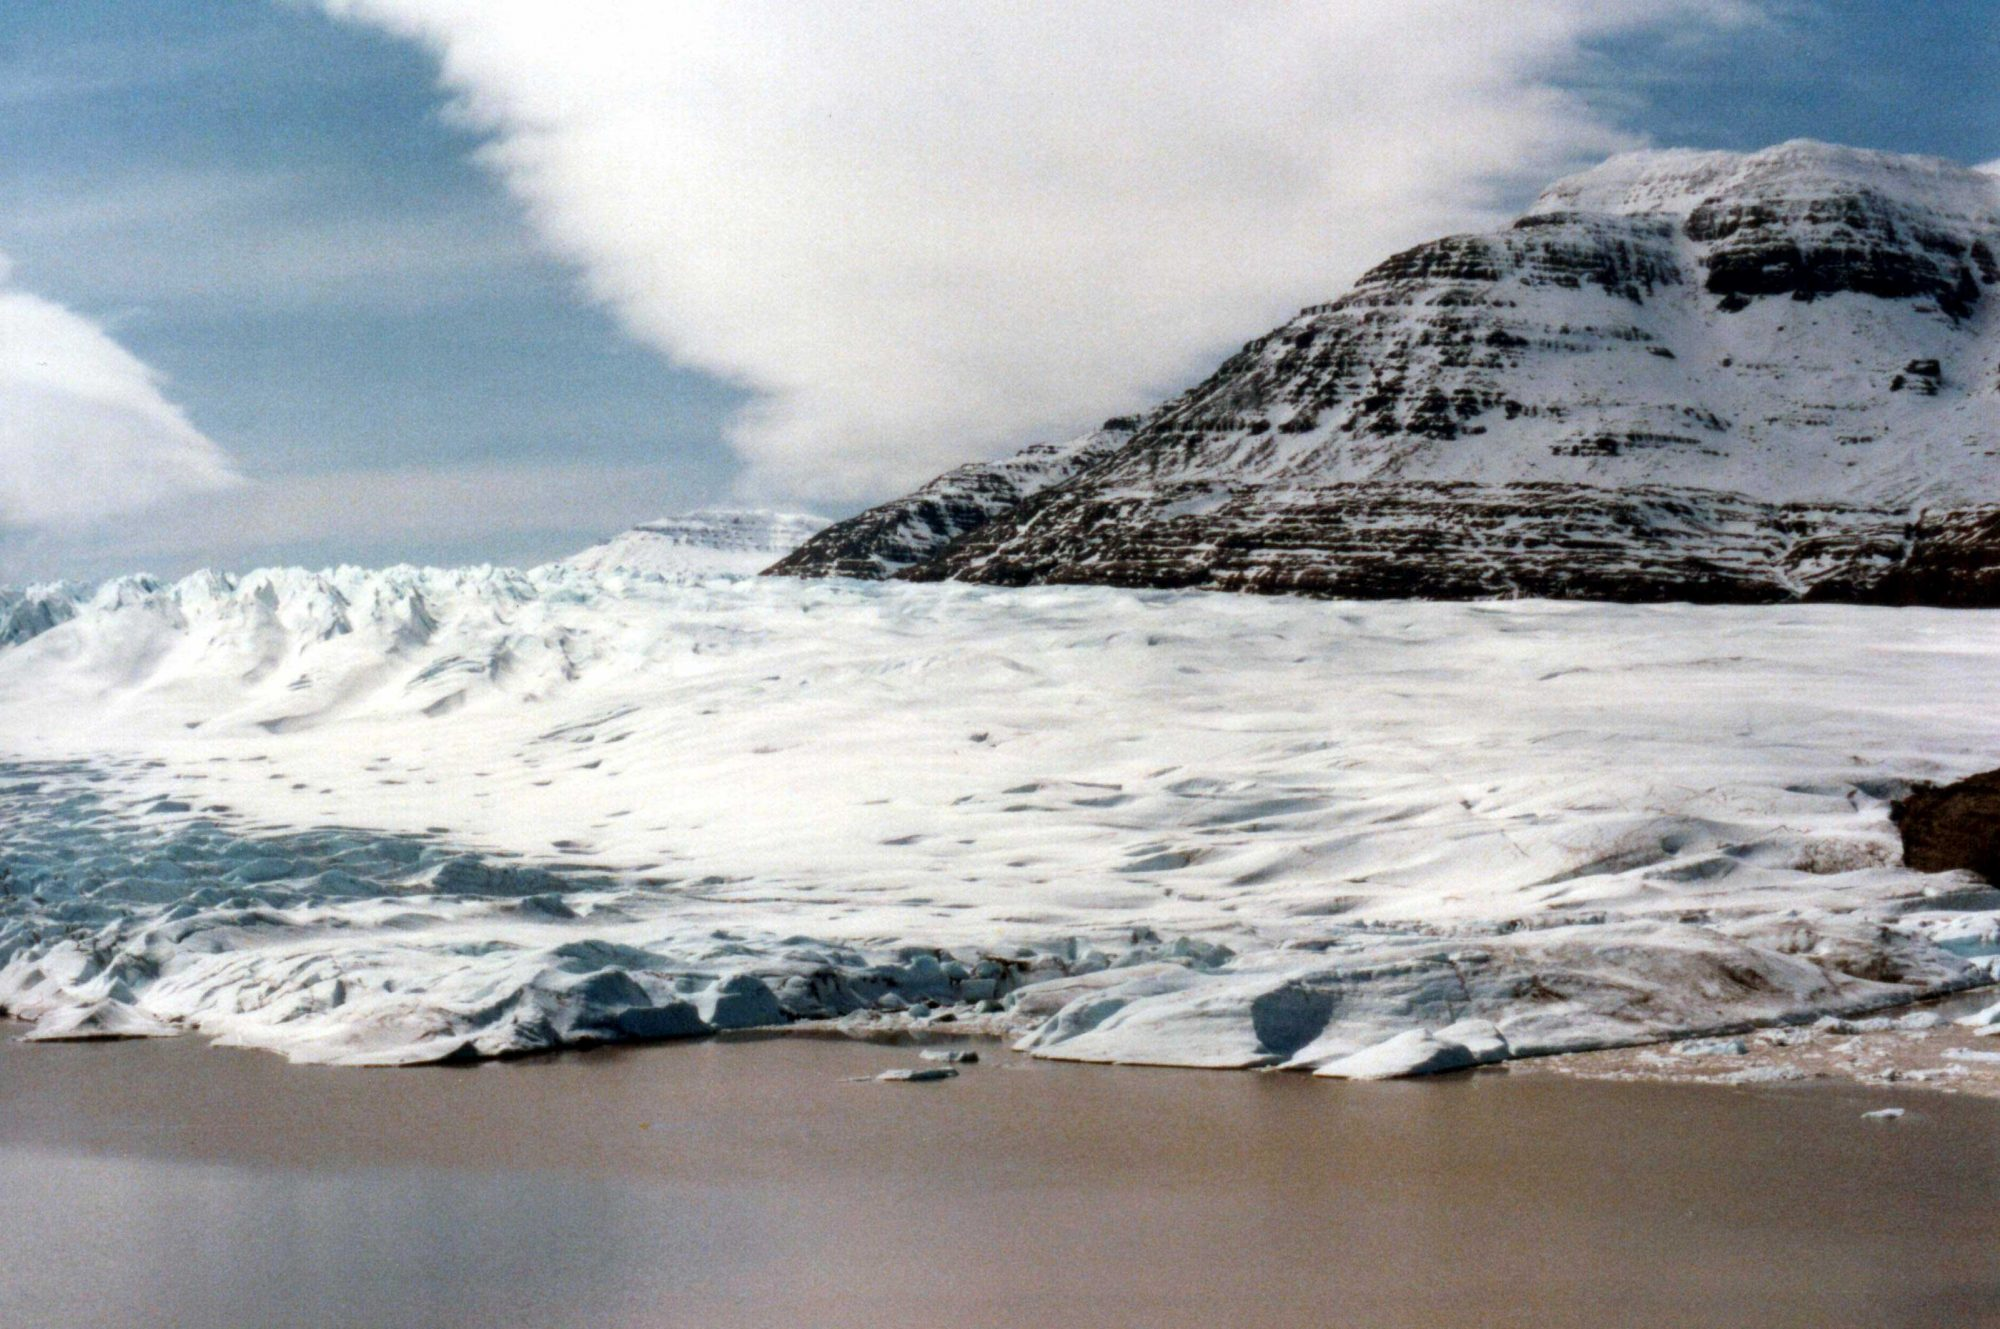 The terminus of a glacier at the southern end of Cook Ice Cap (Source: B. Navez)